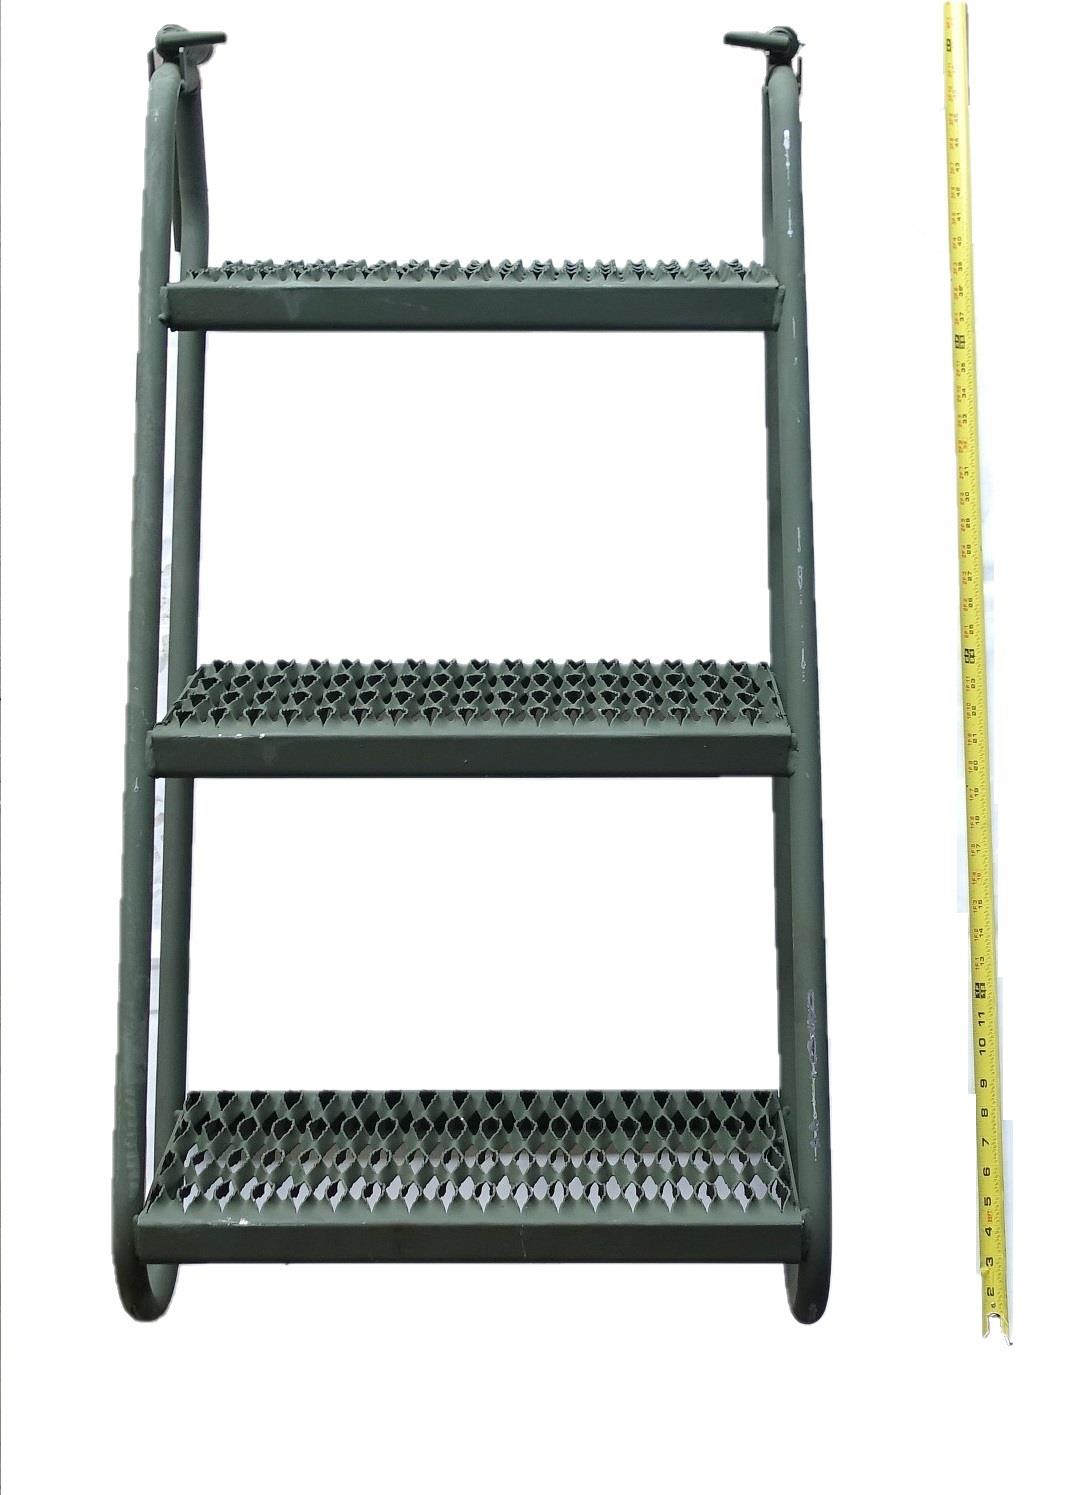 ALL-5136 | ALL-5136 3-Step Boarding Ladder (6) (Large).JPG